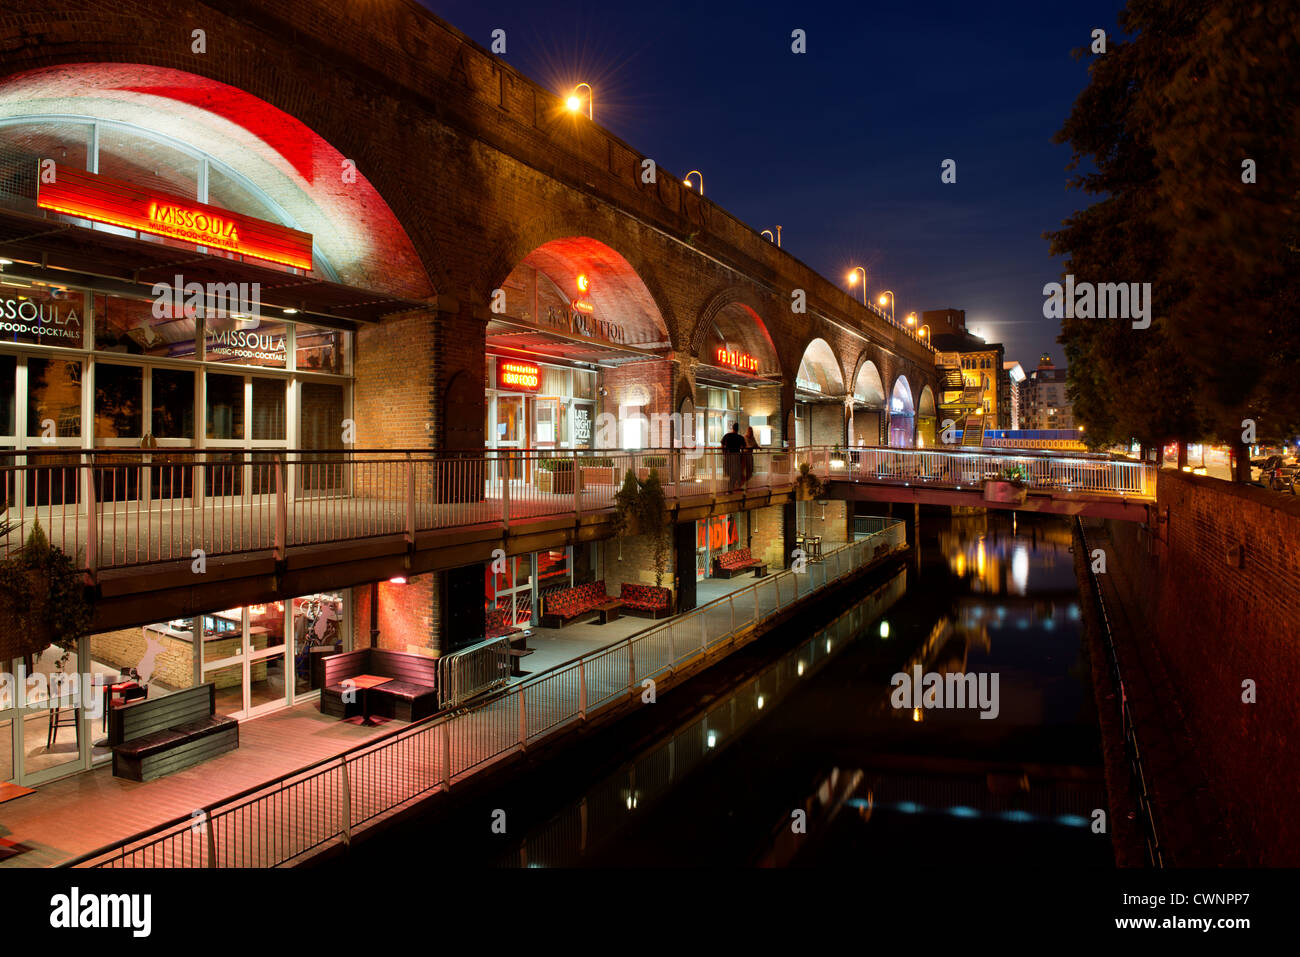 The nightlife of the bars and restaurants of Deansgate Locks arches at night, Manchester. - Stock Image